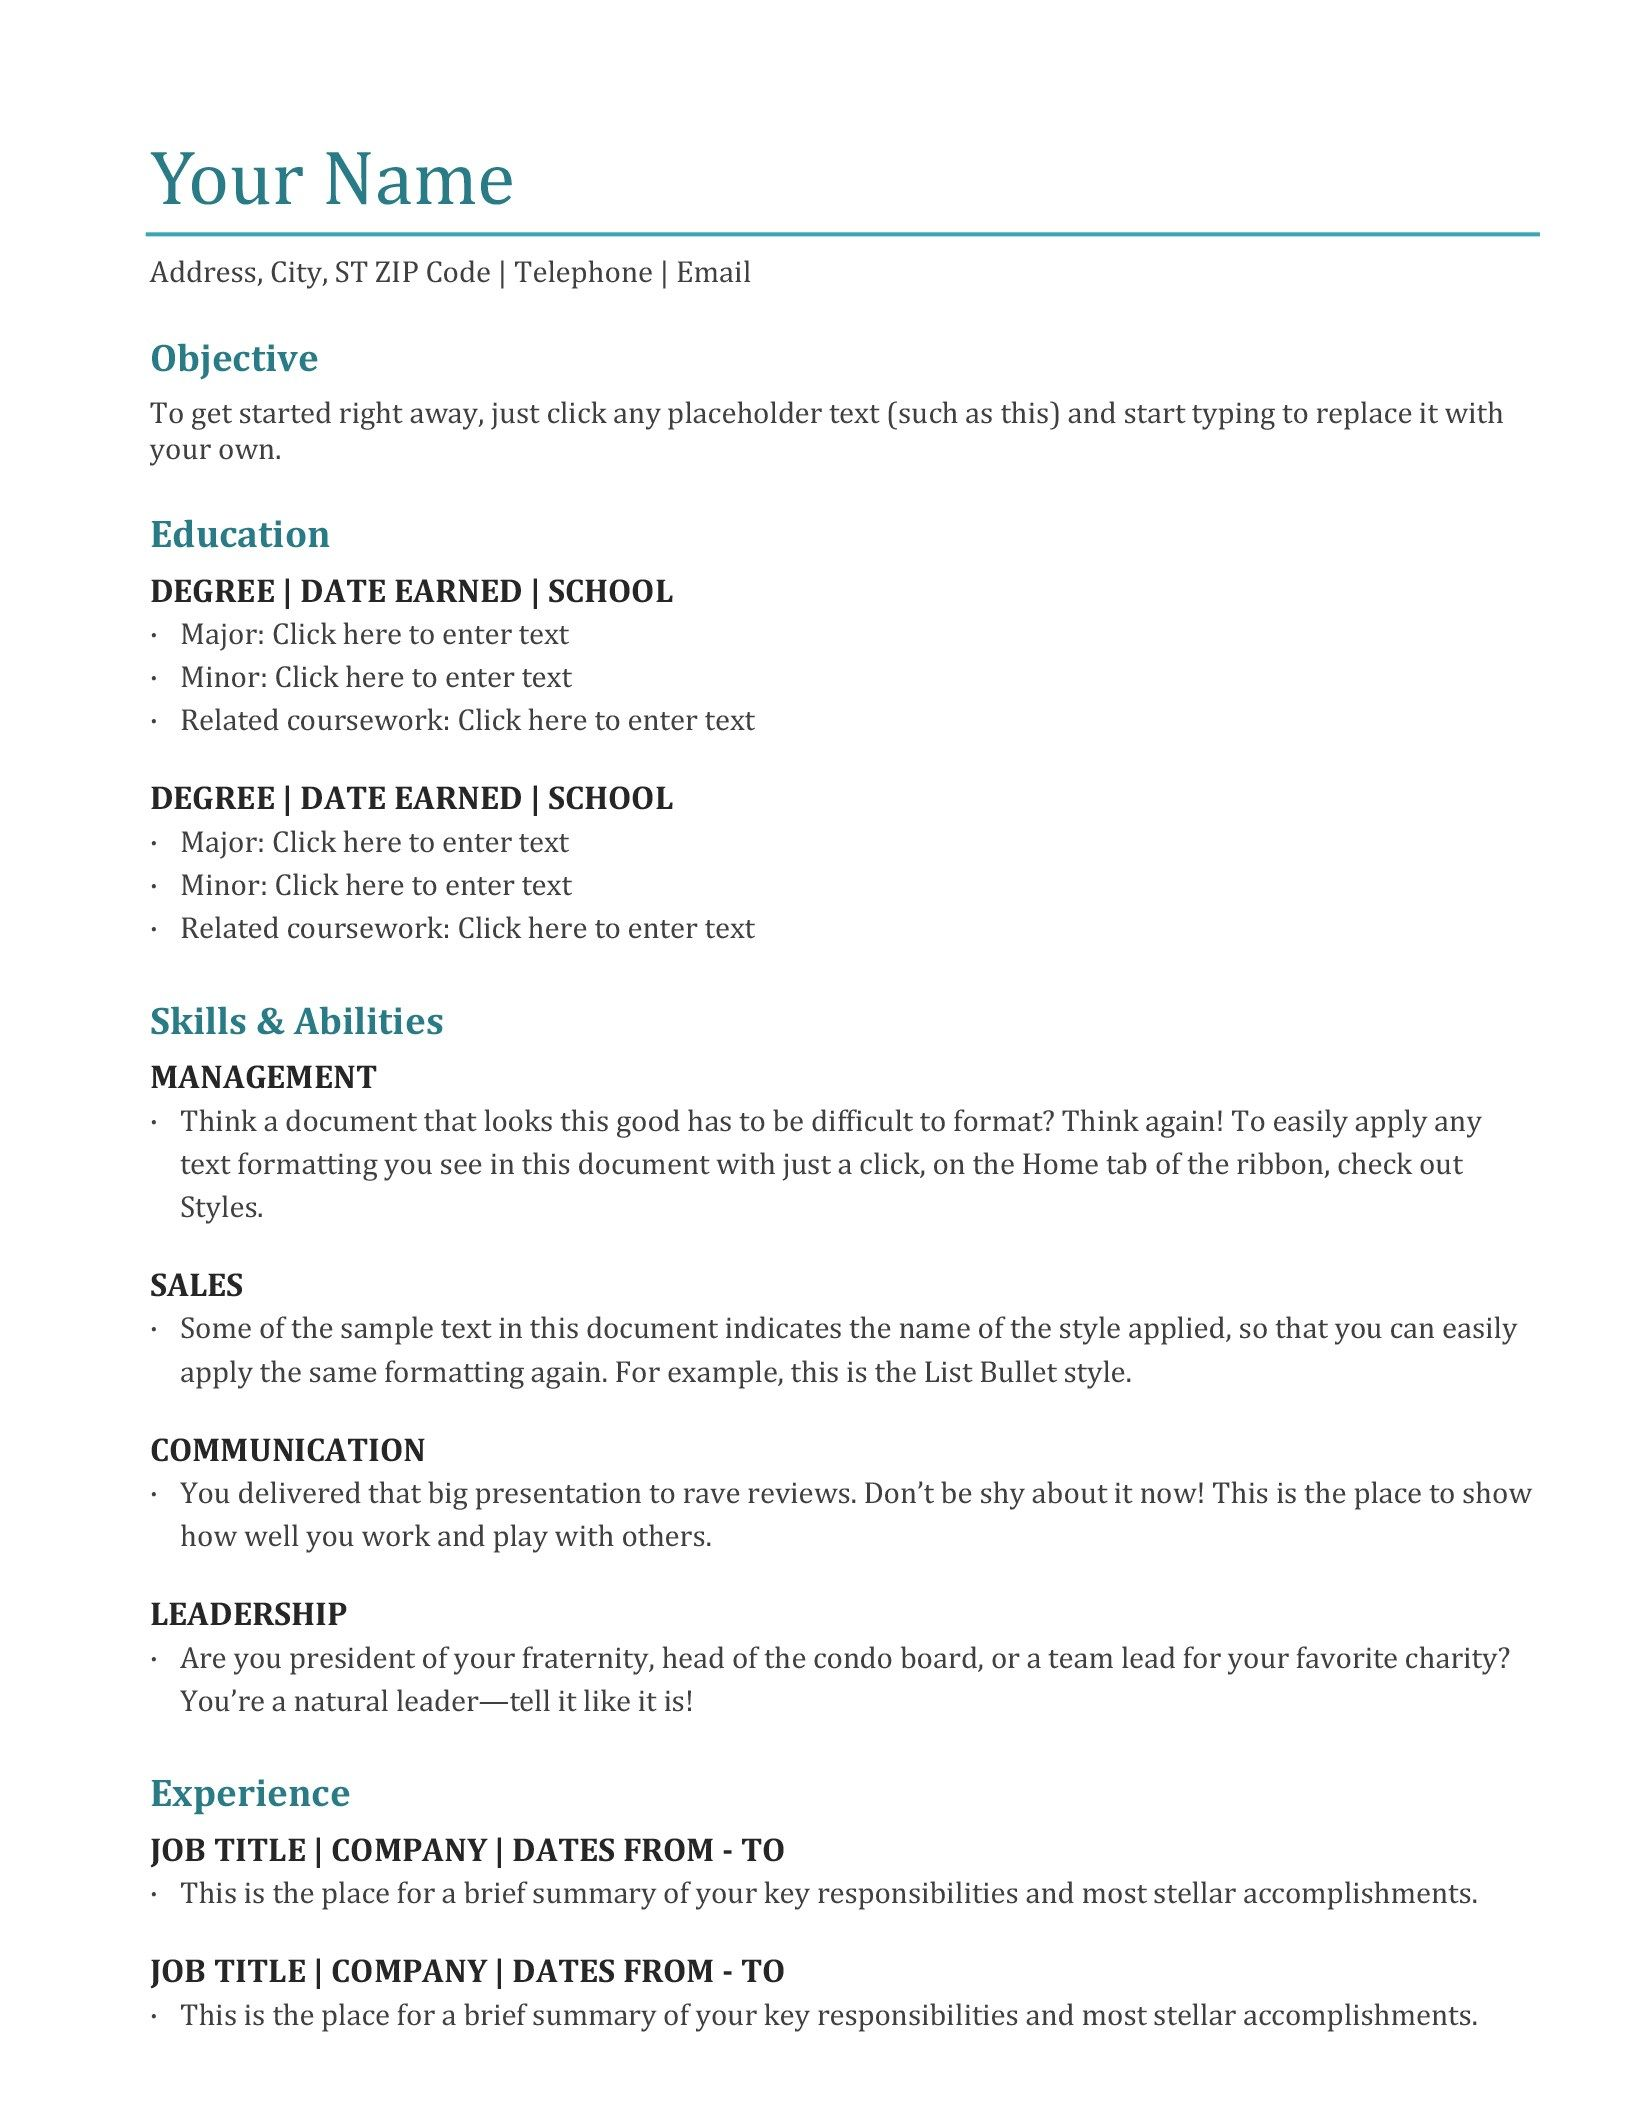 Resume (color) Microsoft word resume template, Simple